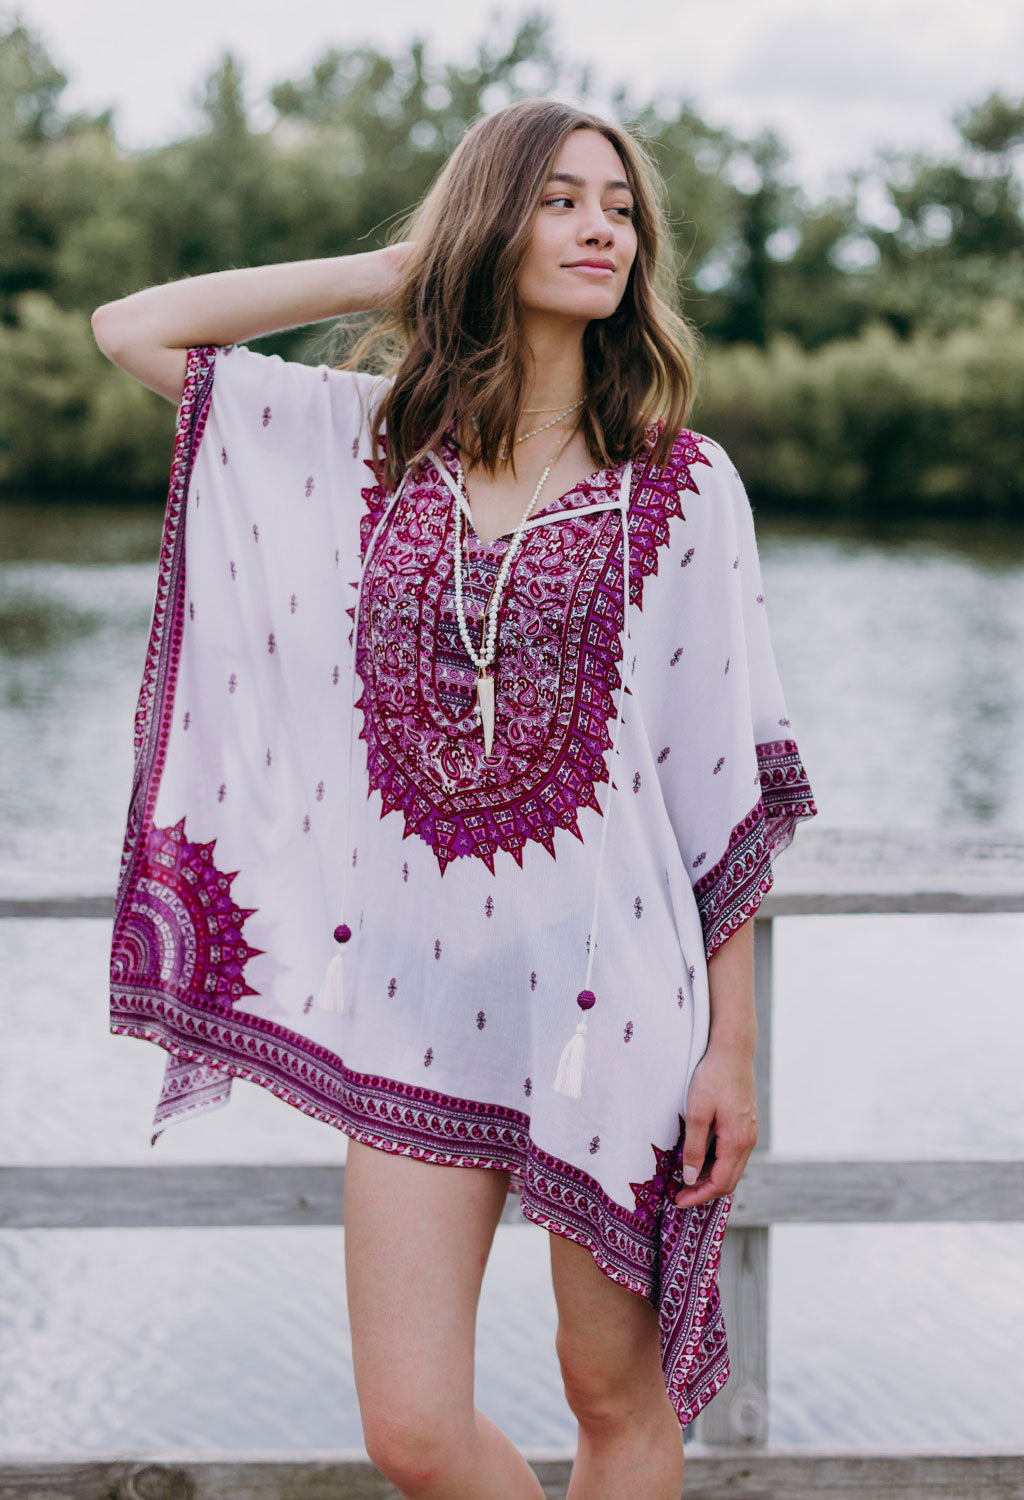 Kara Caftan Kimono Swim Cover-Up Top